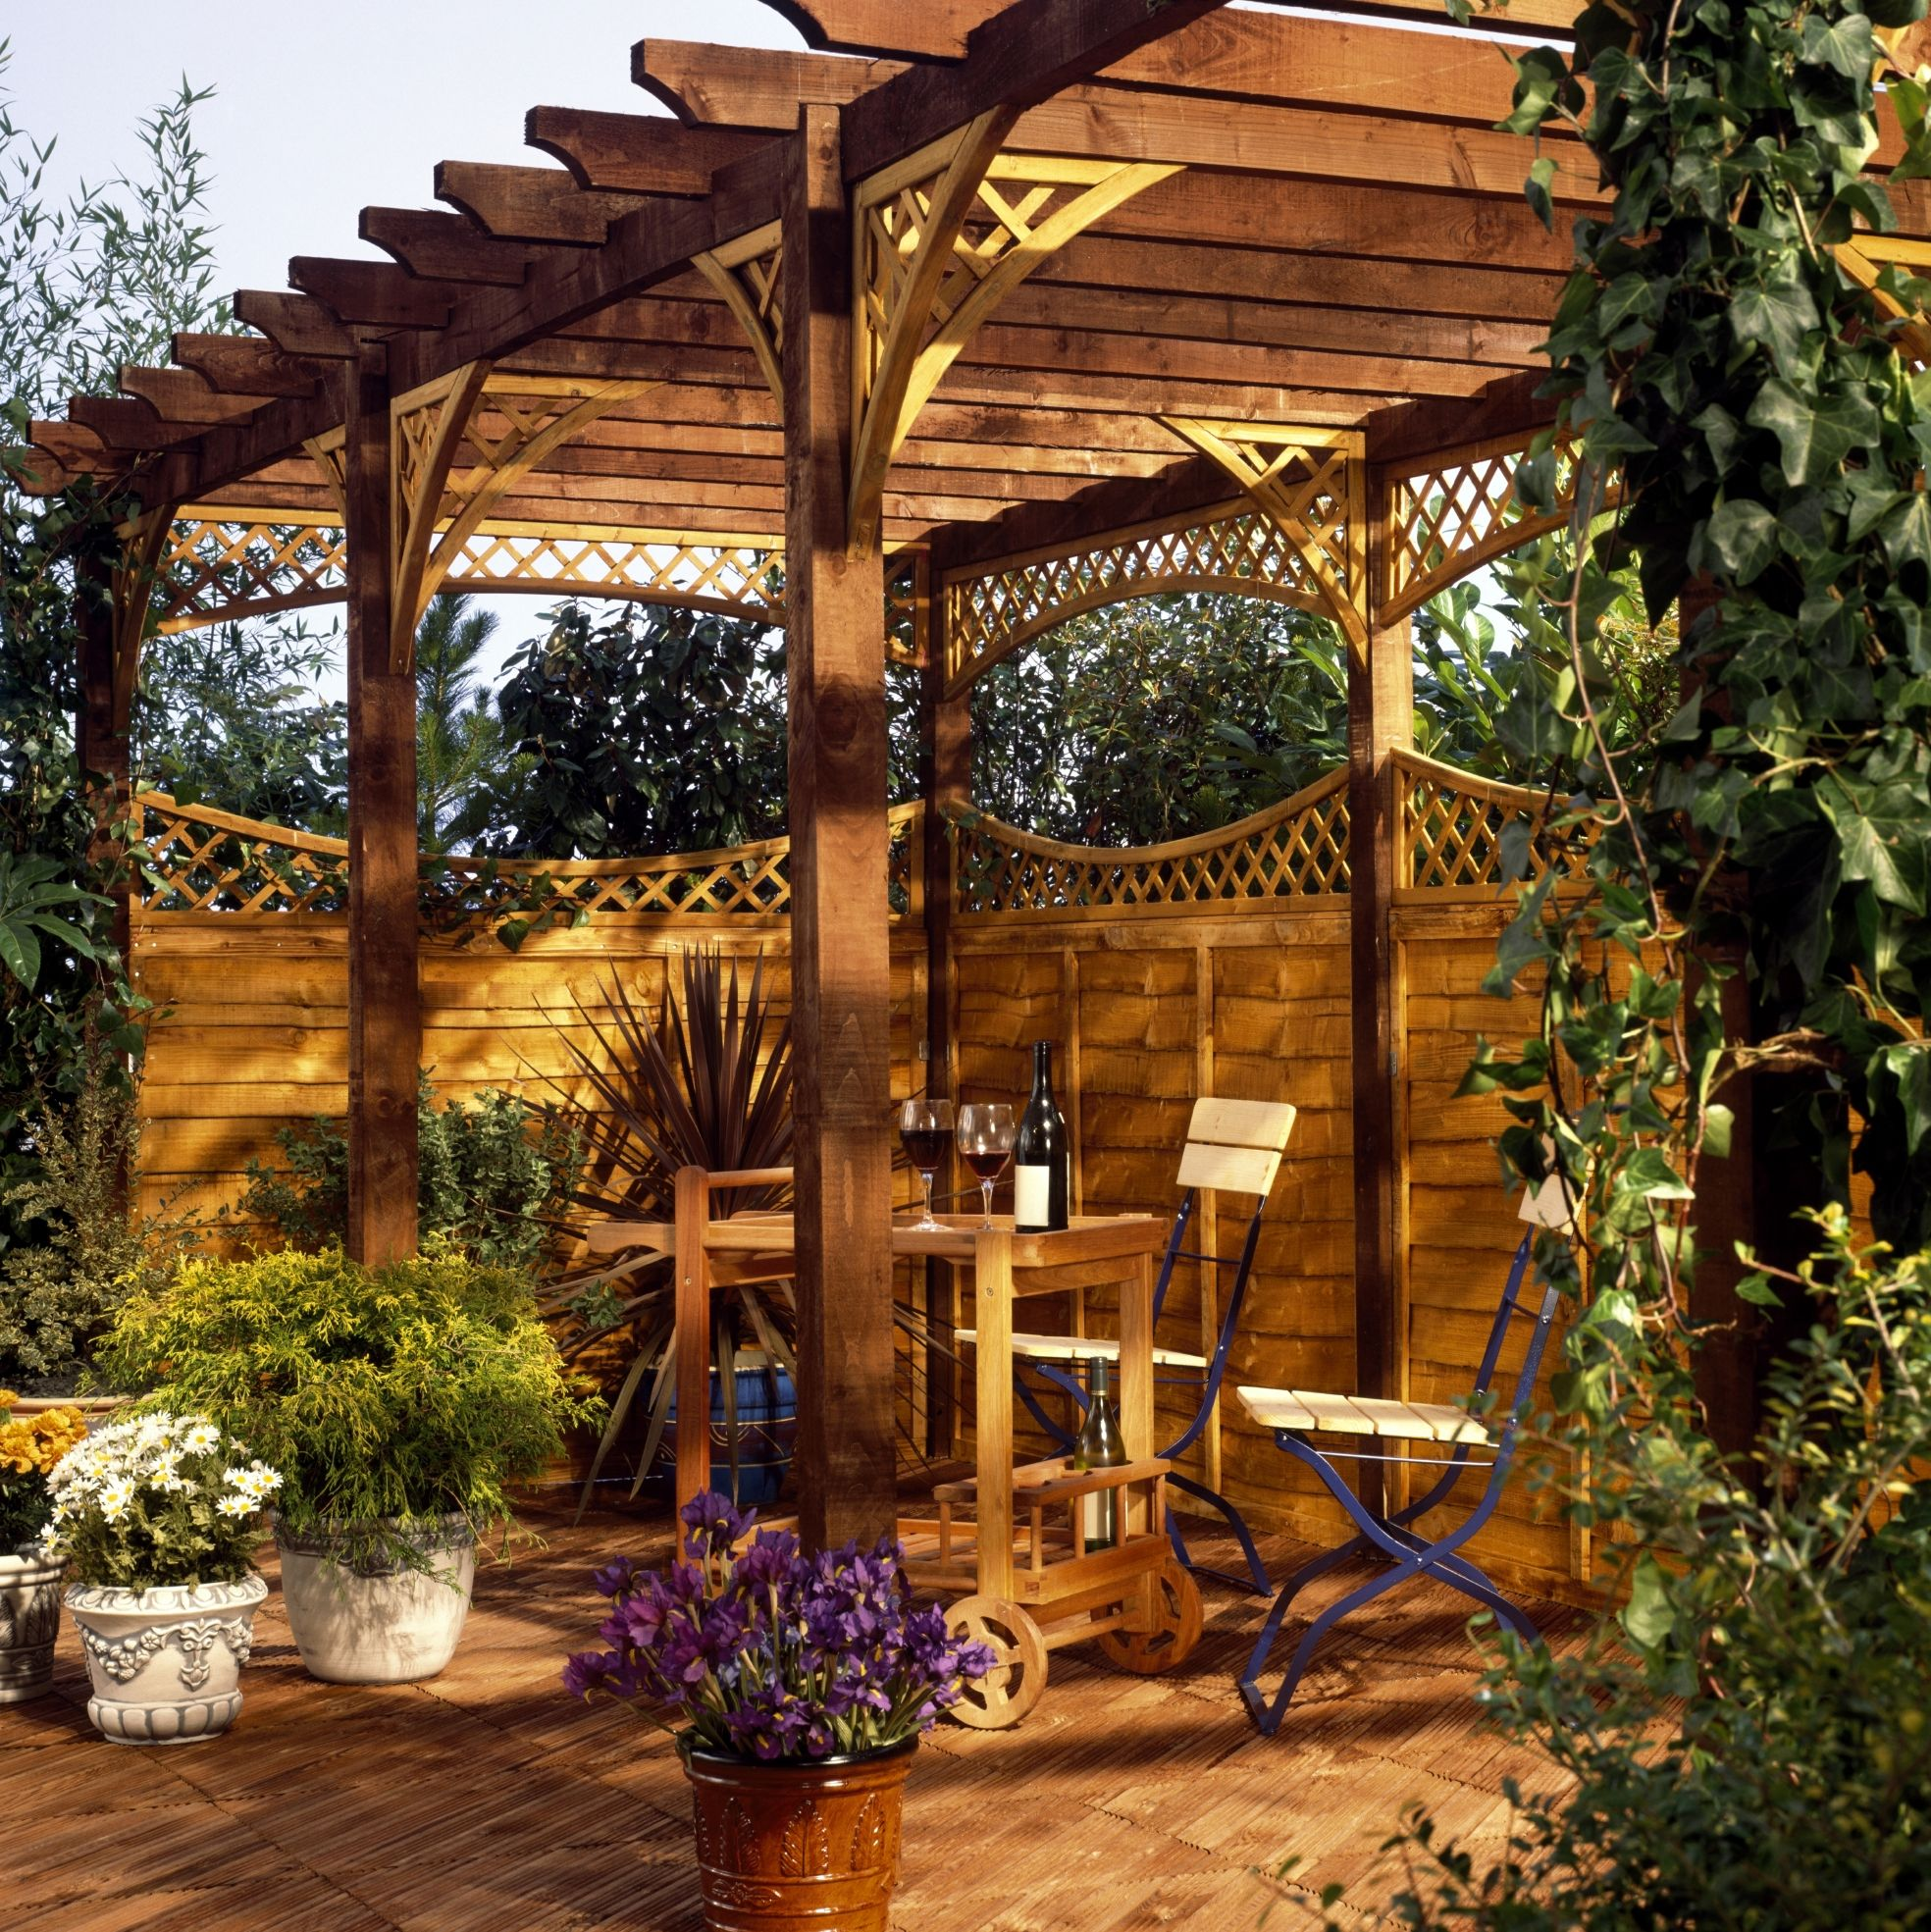 A Freestanding Shade Shelter Provides Privacy And A Cool Place To Relax In Your Own Backyard Take This Idea To Your Avec Images Abri De Jardin Bois Abri De Jardin Jardins